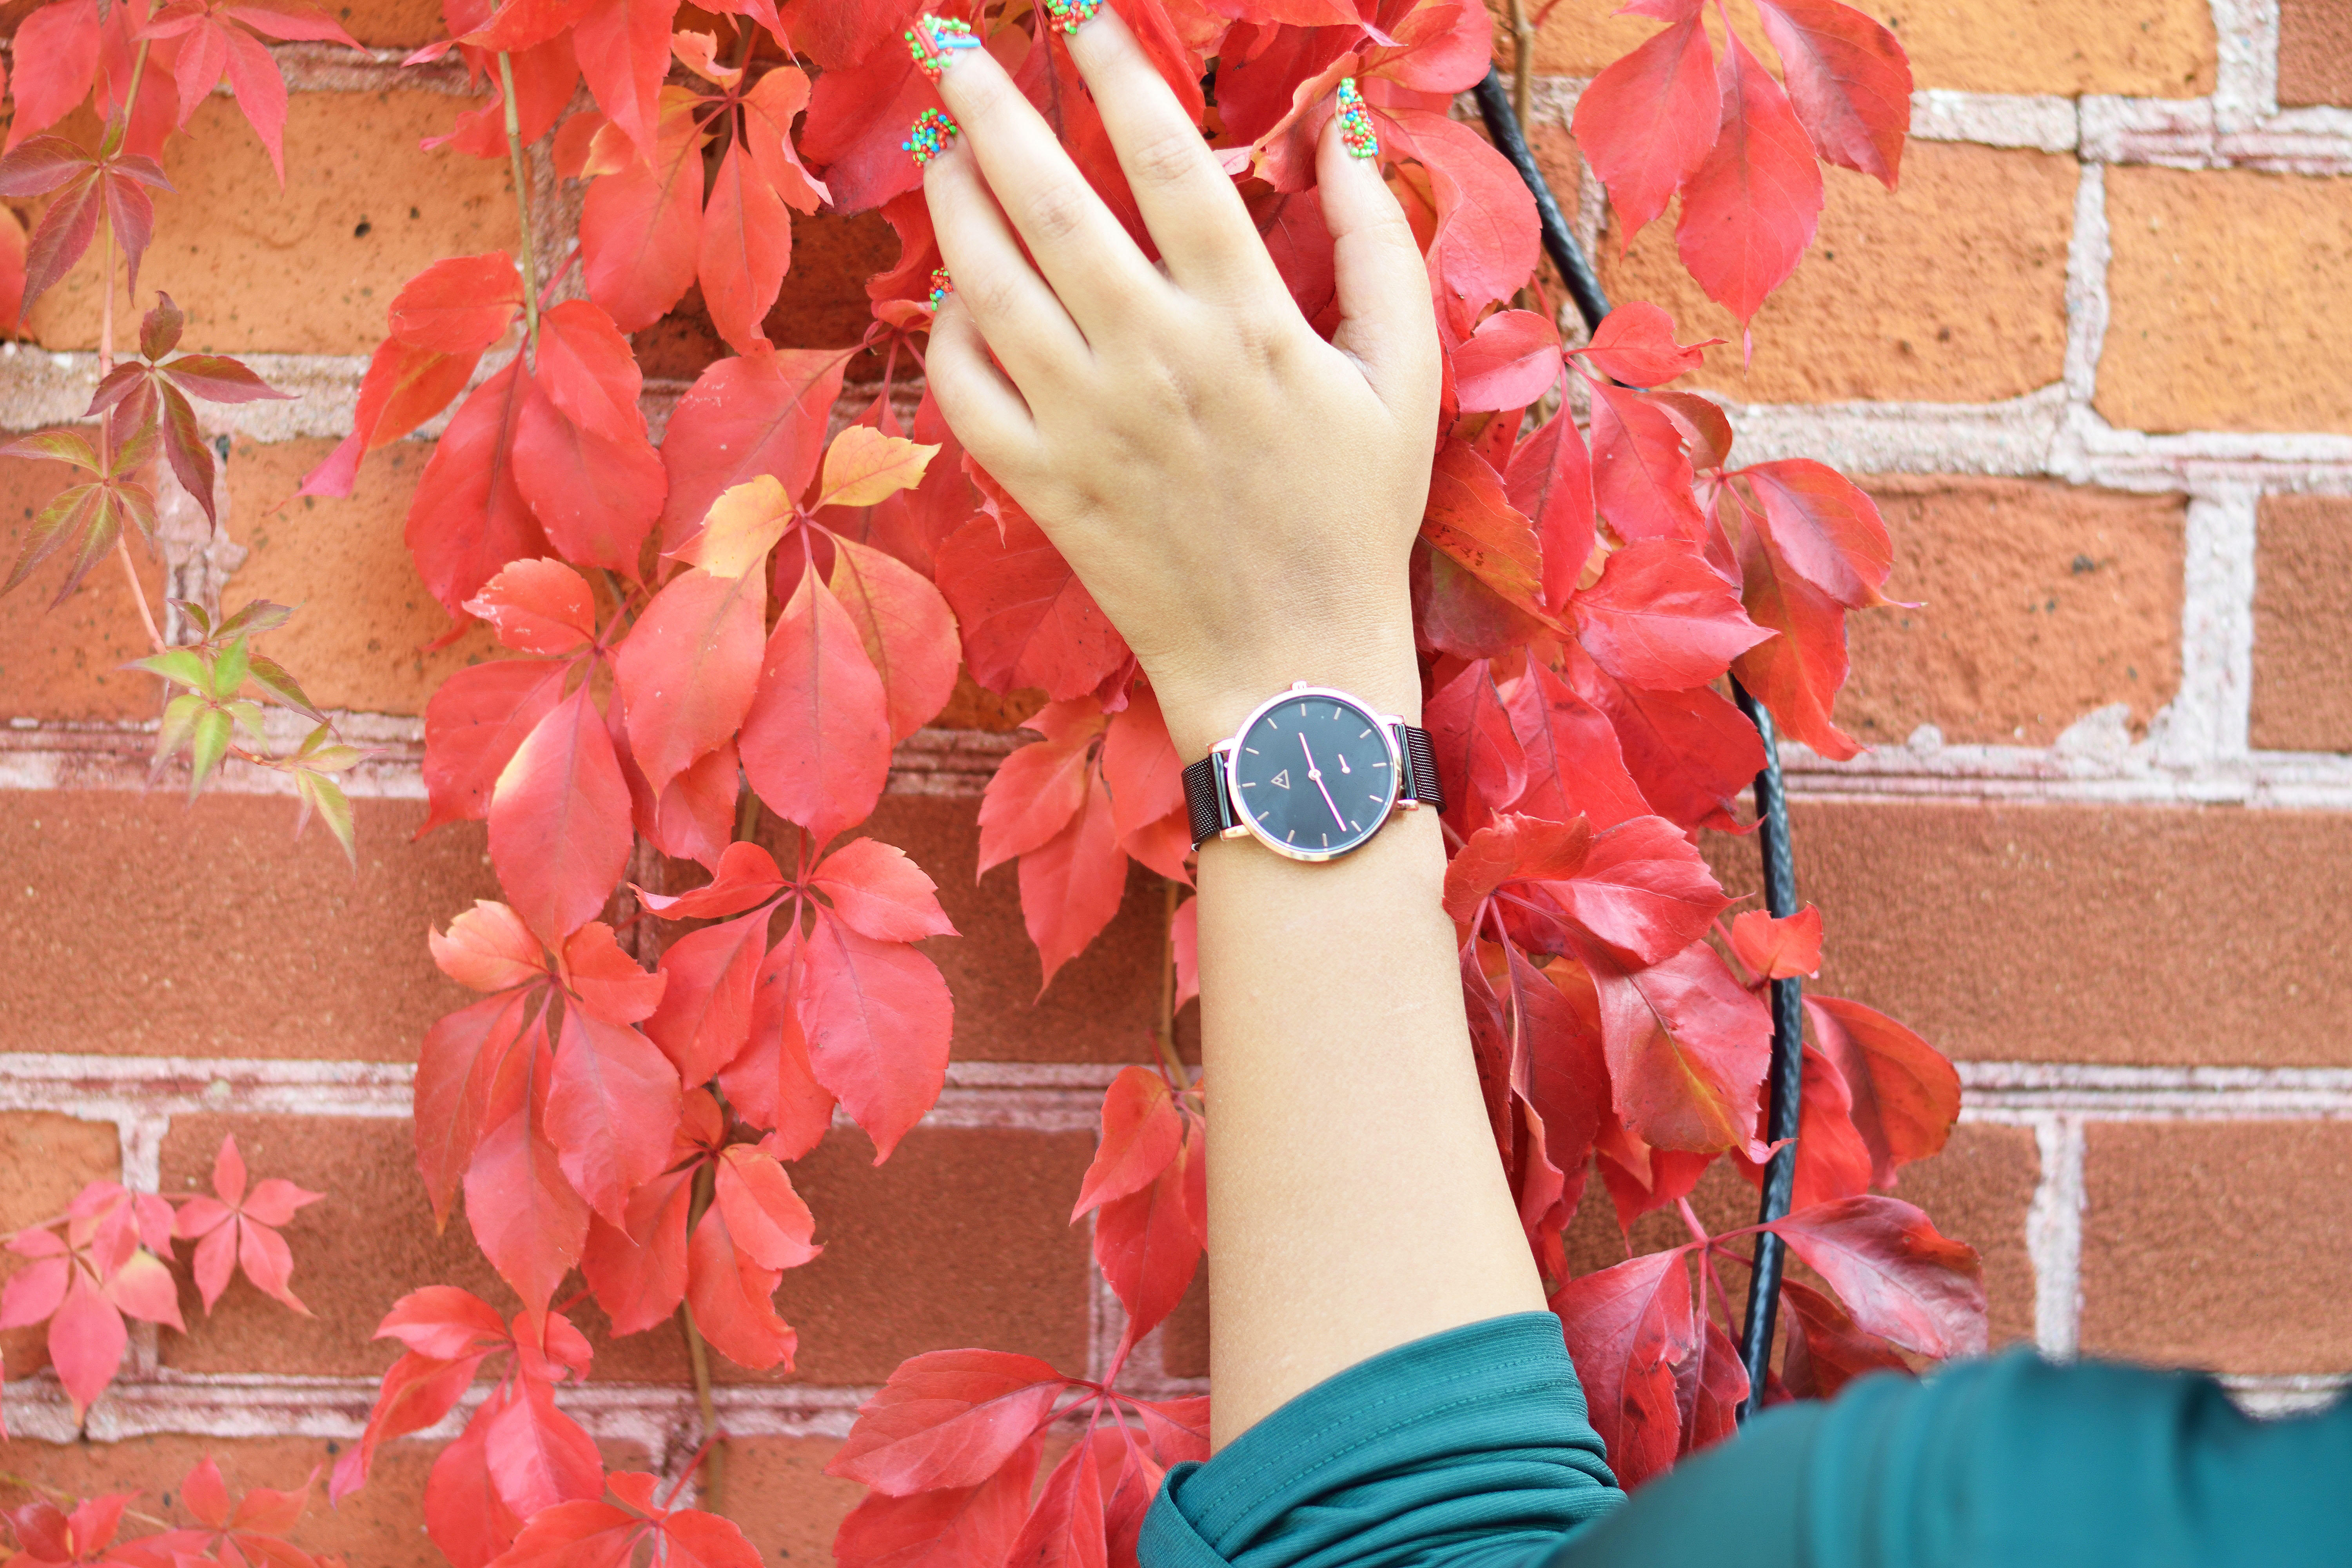 Catch hold of time with Medium Watches